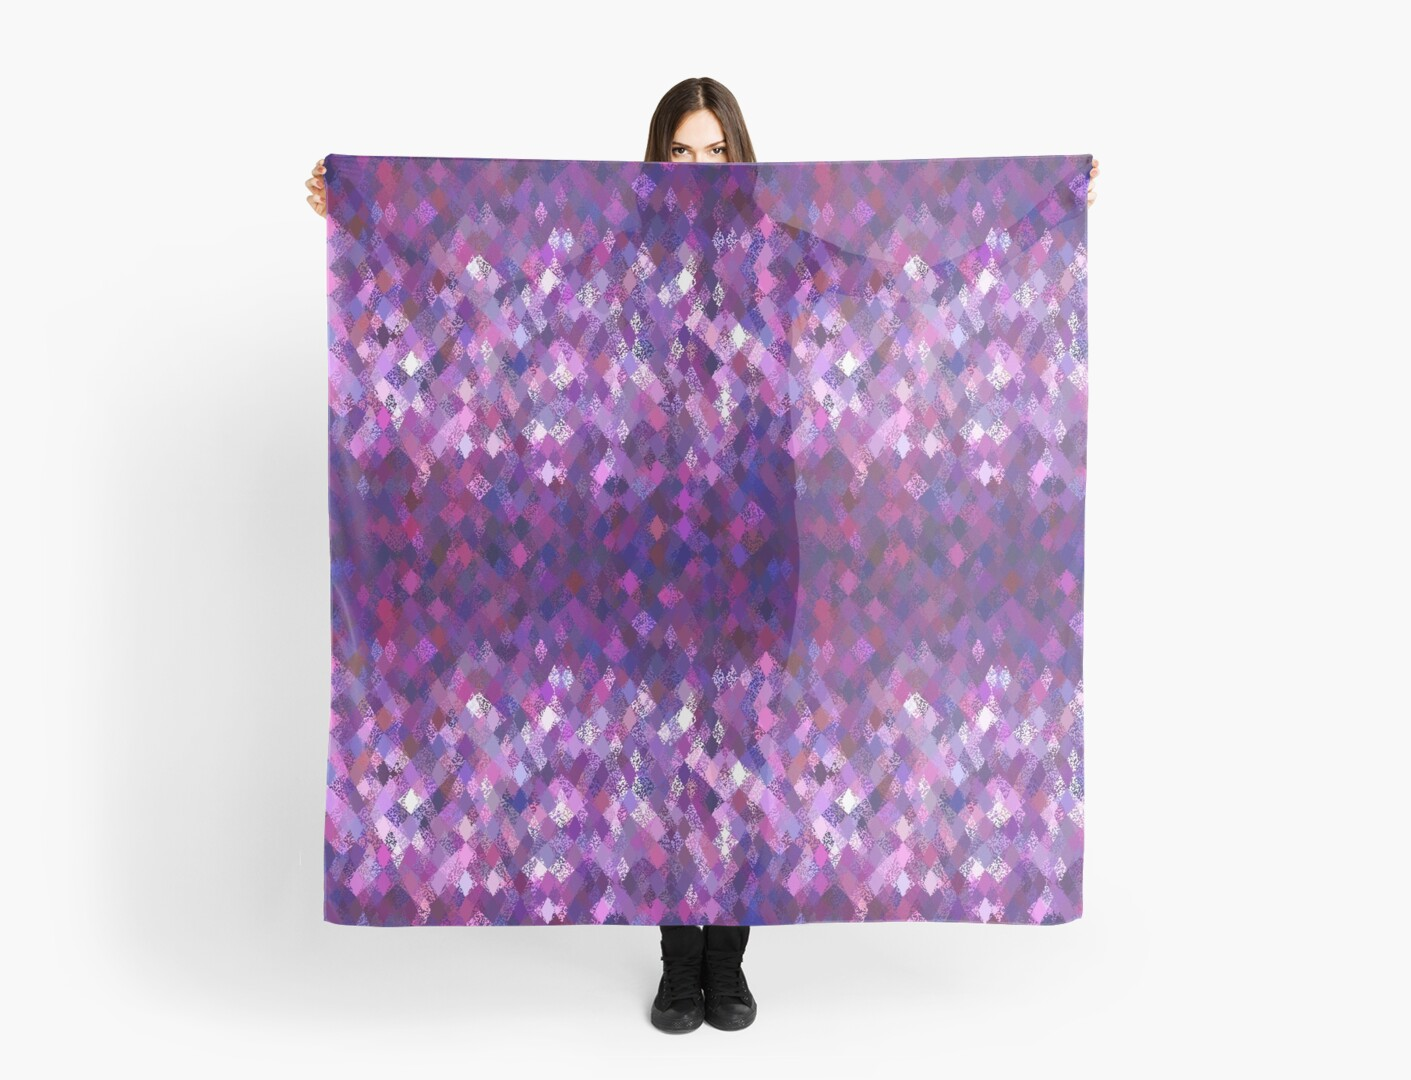 Purple Abstract Harlequin Pattern  by Ra12